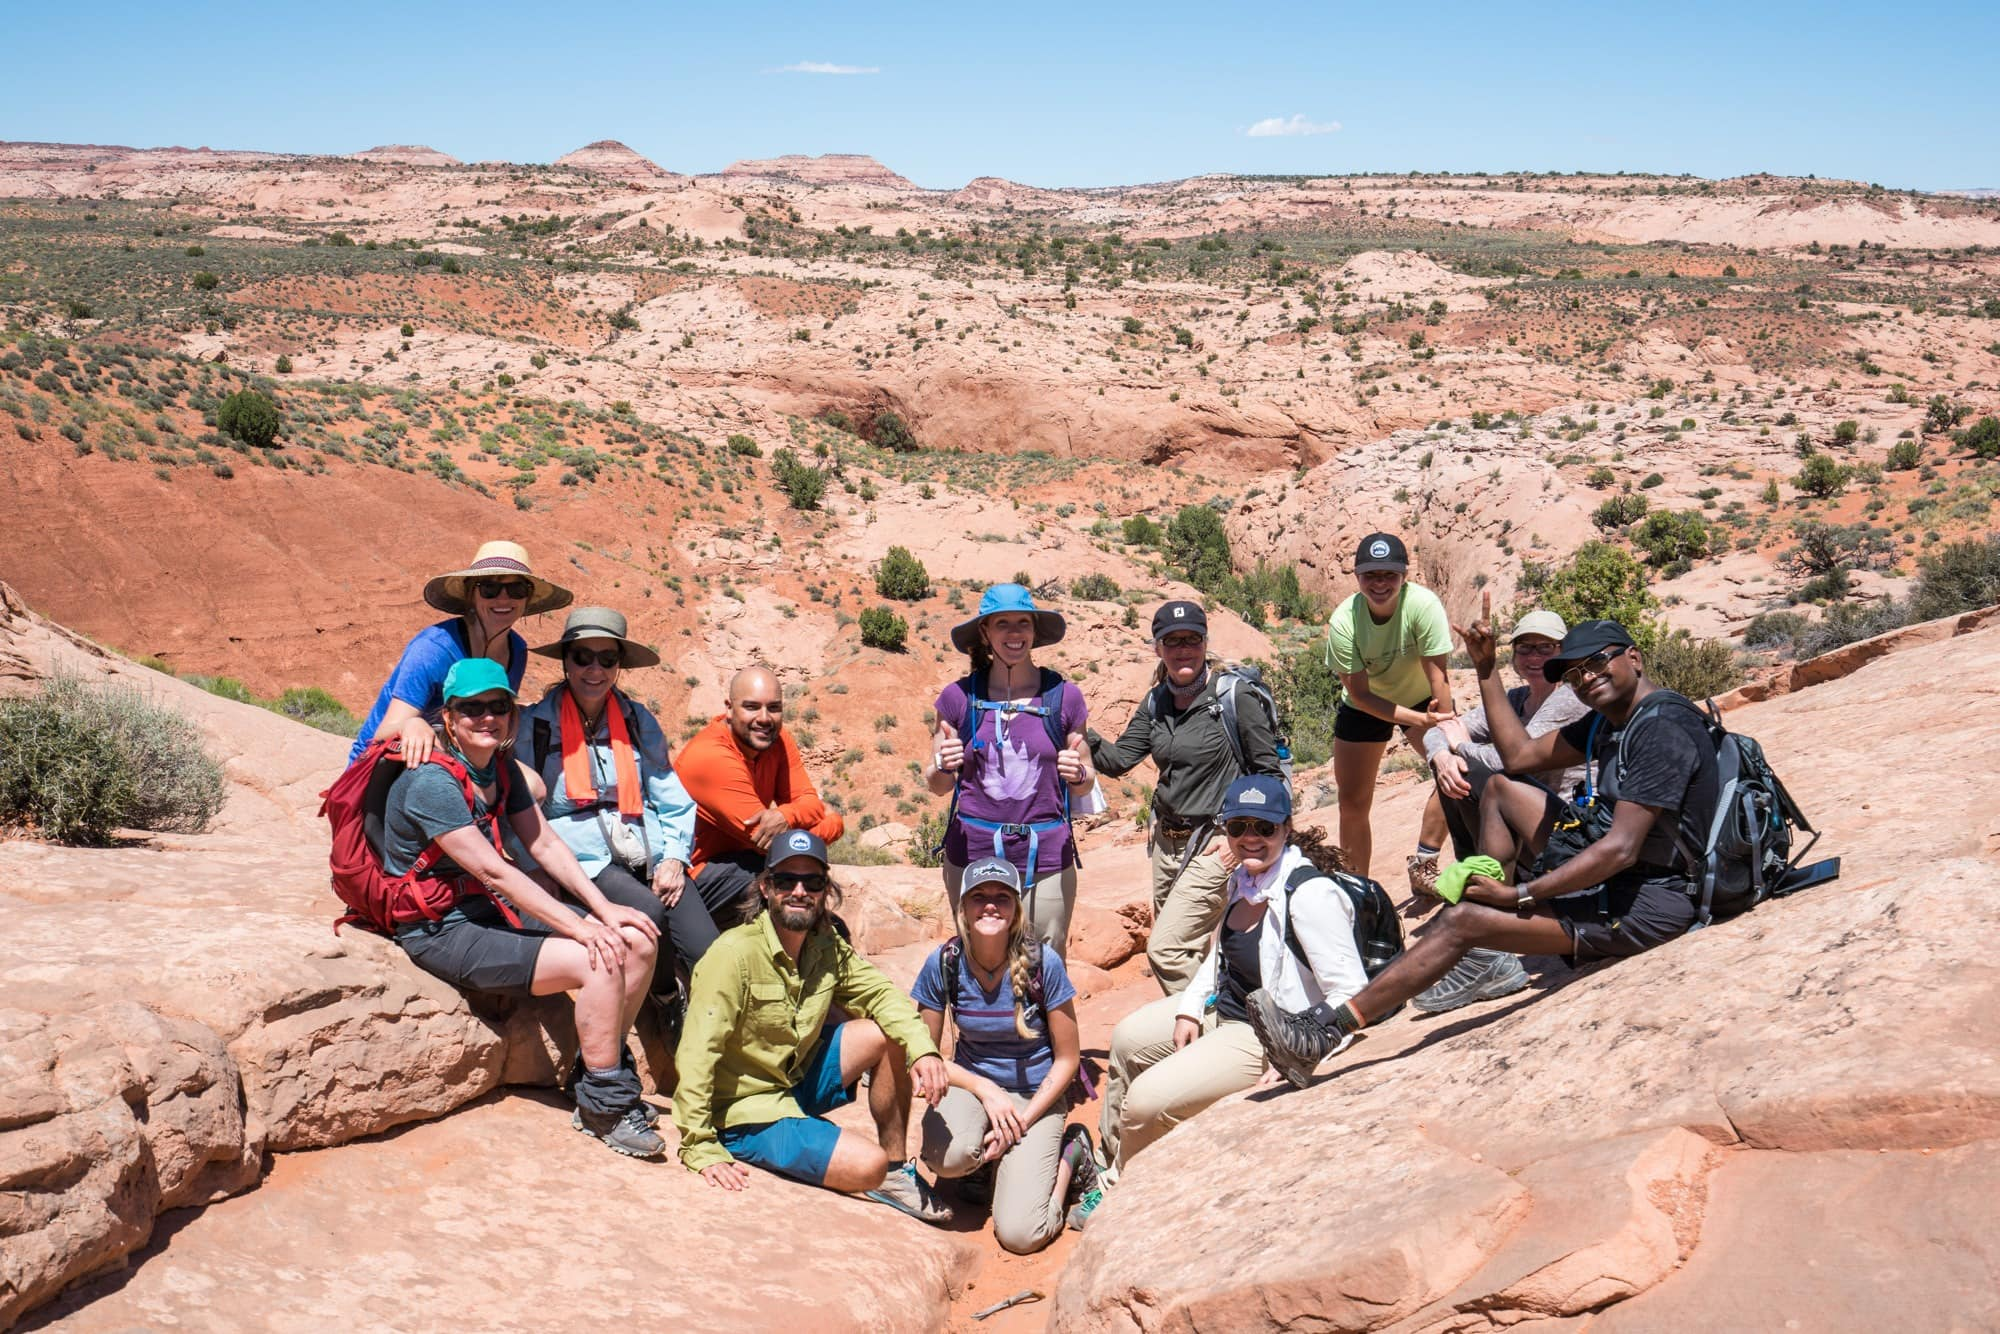 Escalante // Bryce Canyon National Park // Looking to explore the National Parks of Southern Utah? Check out my recap of the Bearfoot Theory 5 day hiking tour with Arizona Outback Adventures.